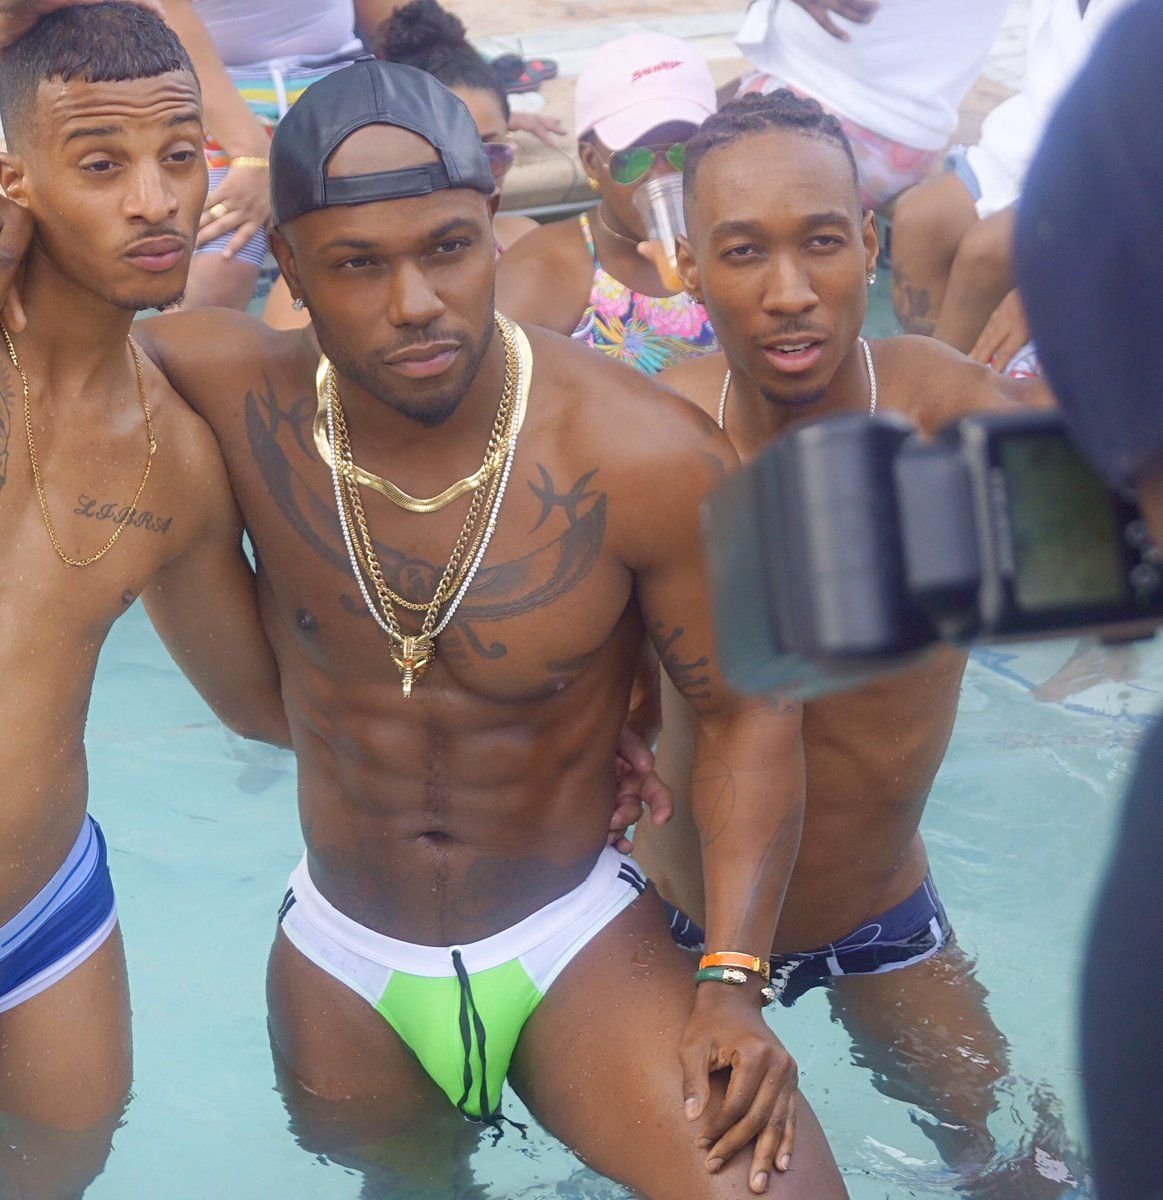 Milan Christopher And Buddies Swimwear Underwear Pinterest